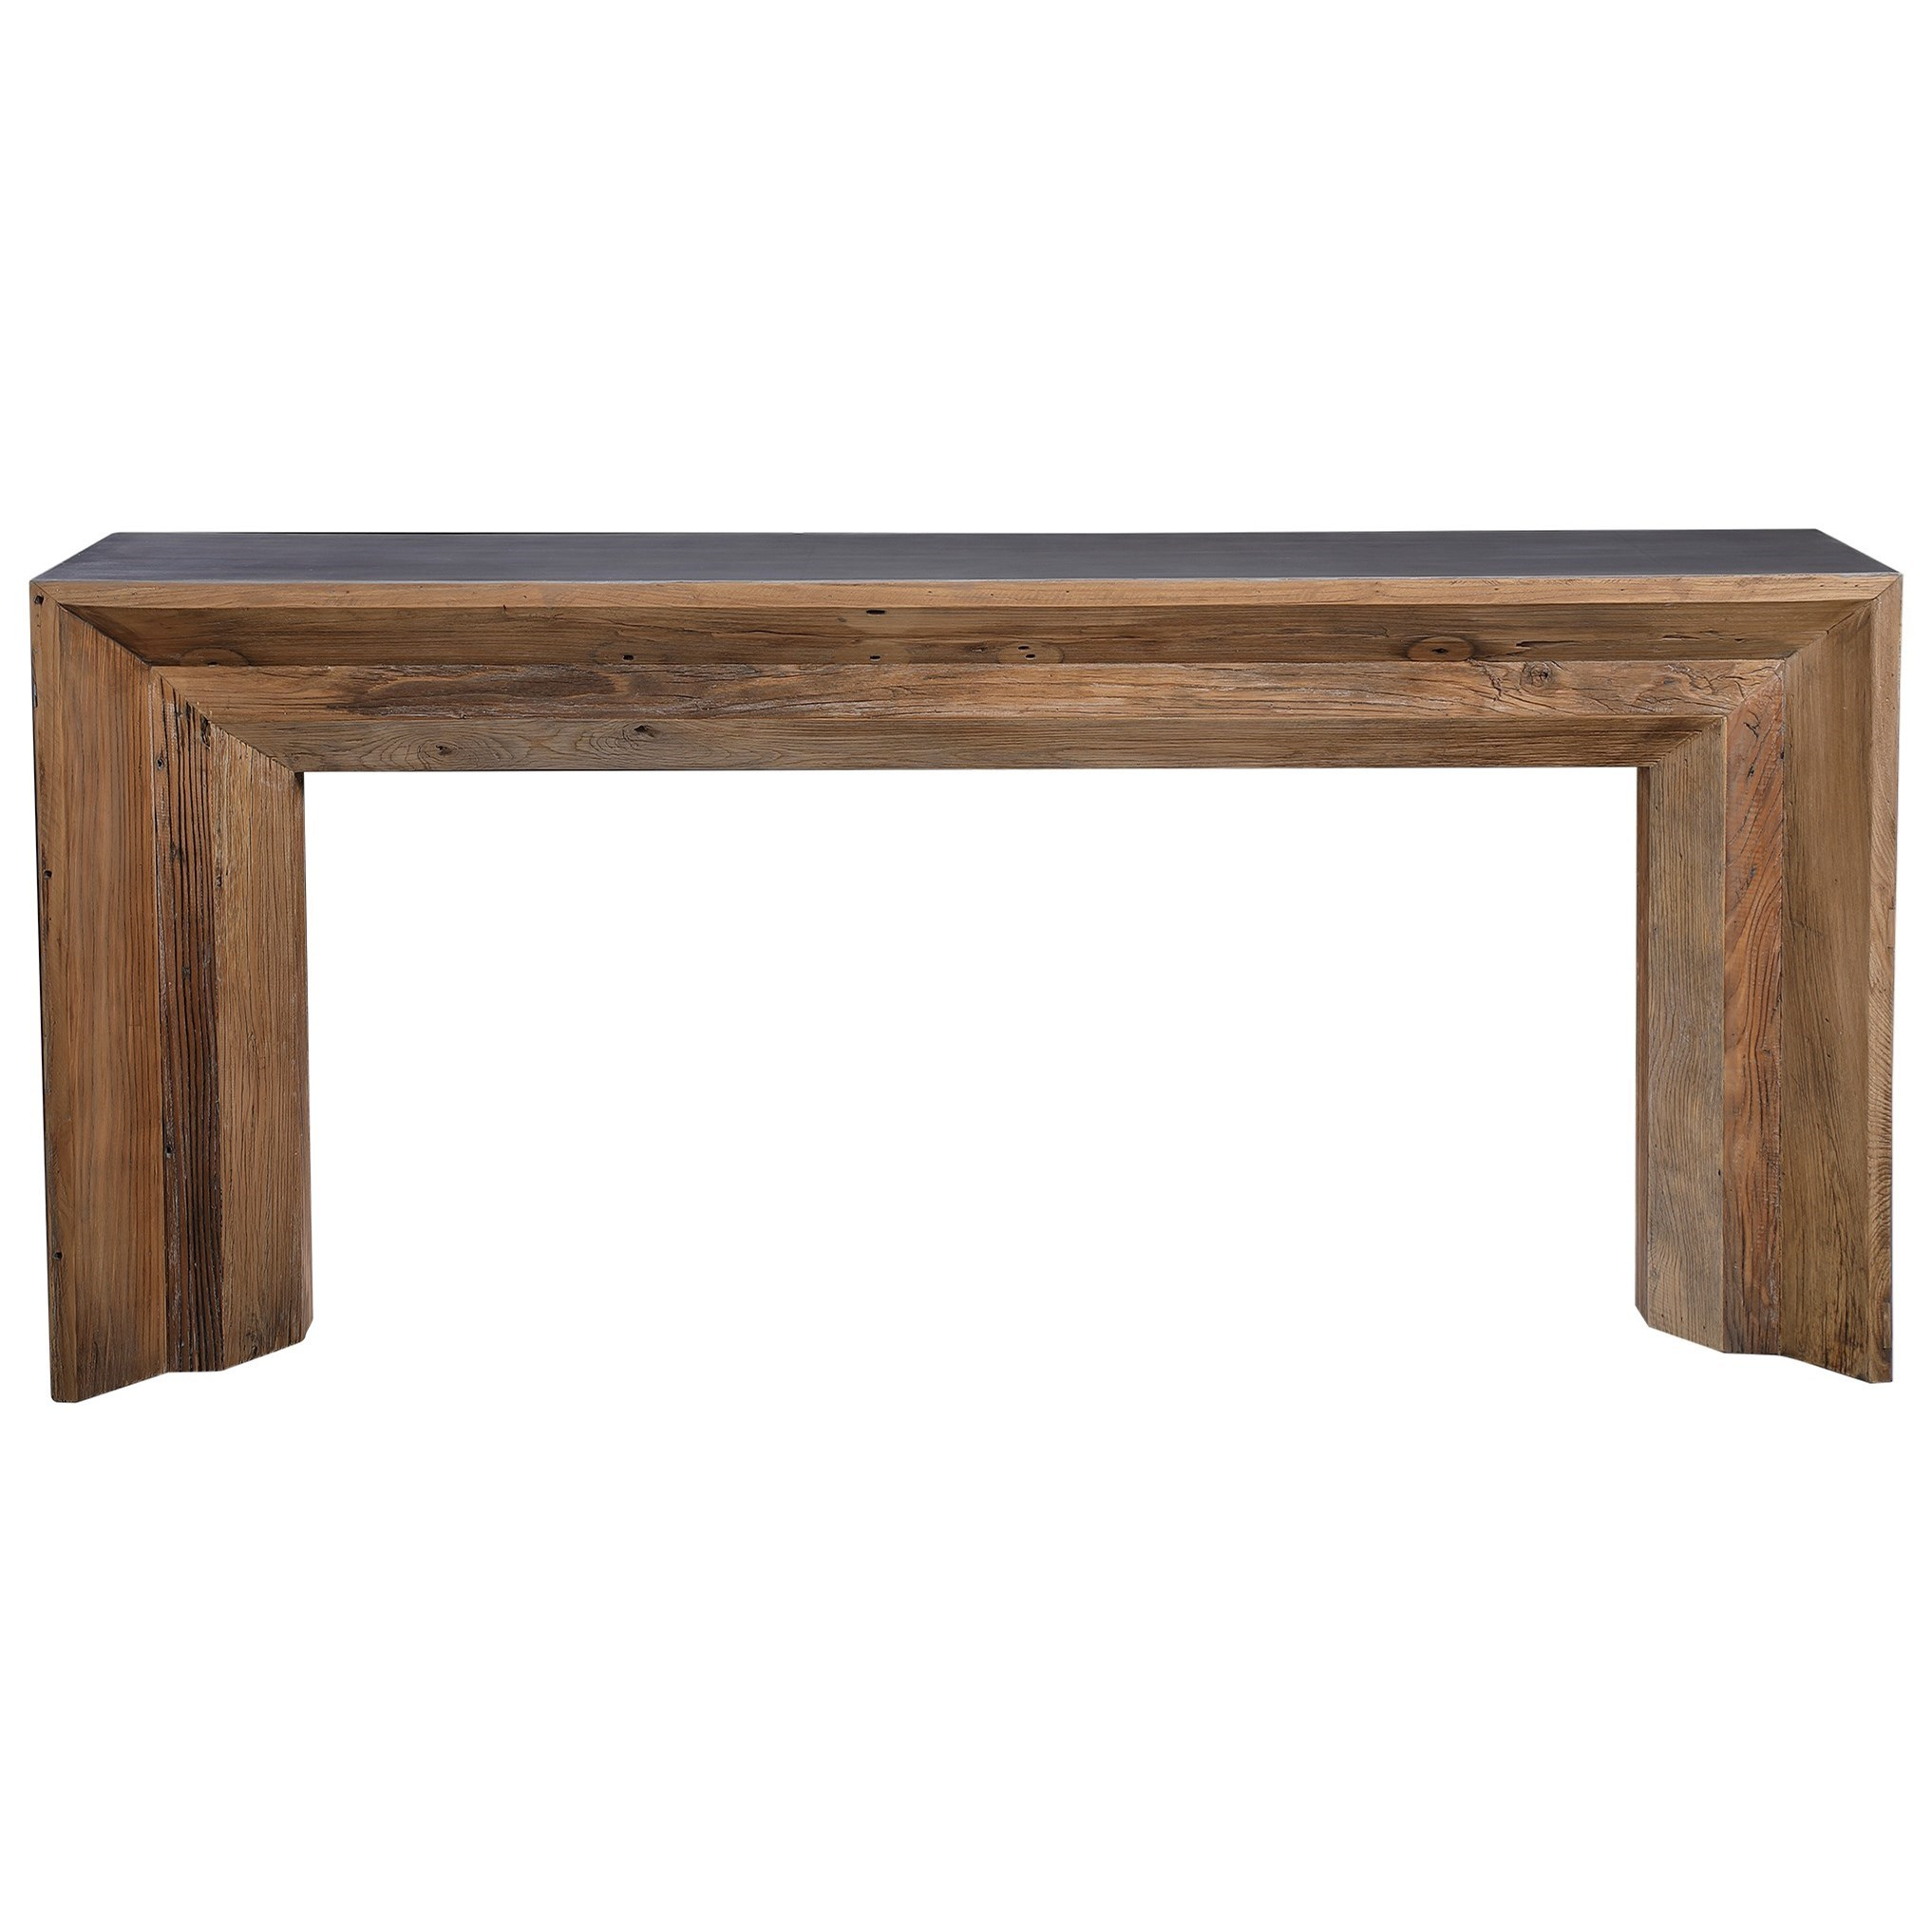 Vail Reclaimed Wood Console Table